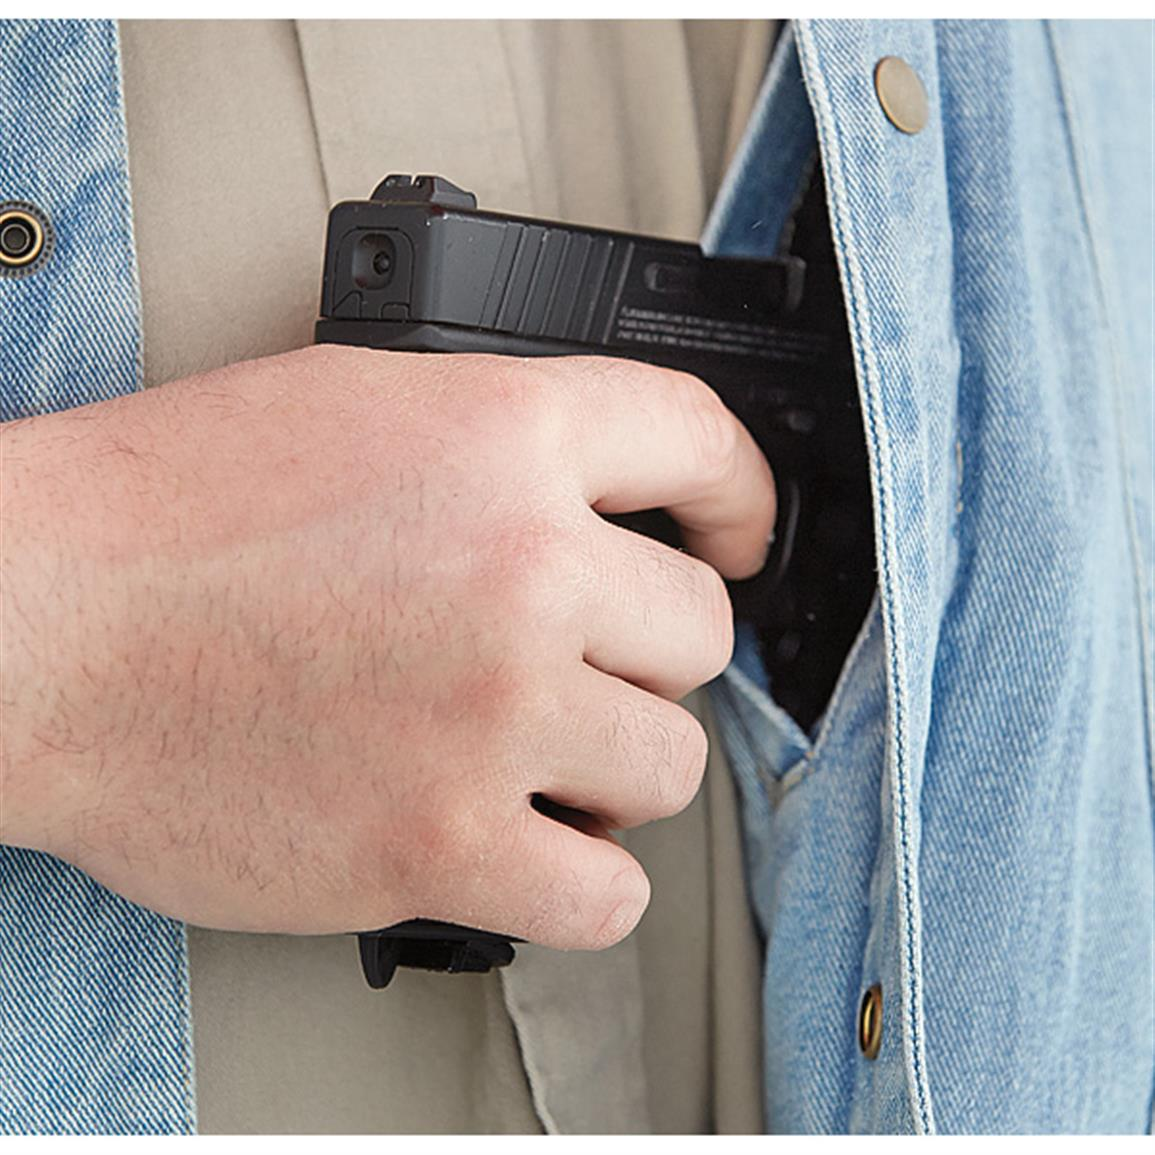 Elastic gun pockets hold handgun up for easy access